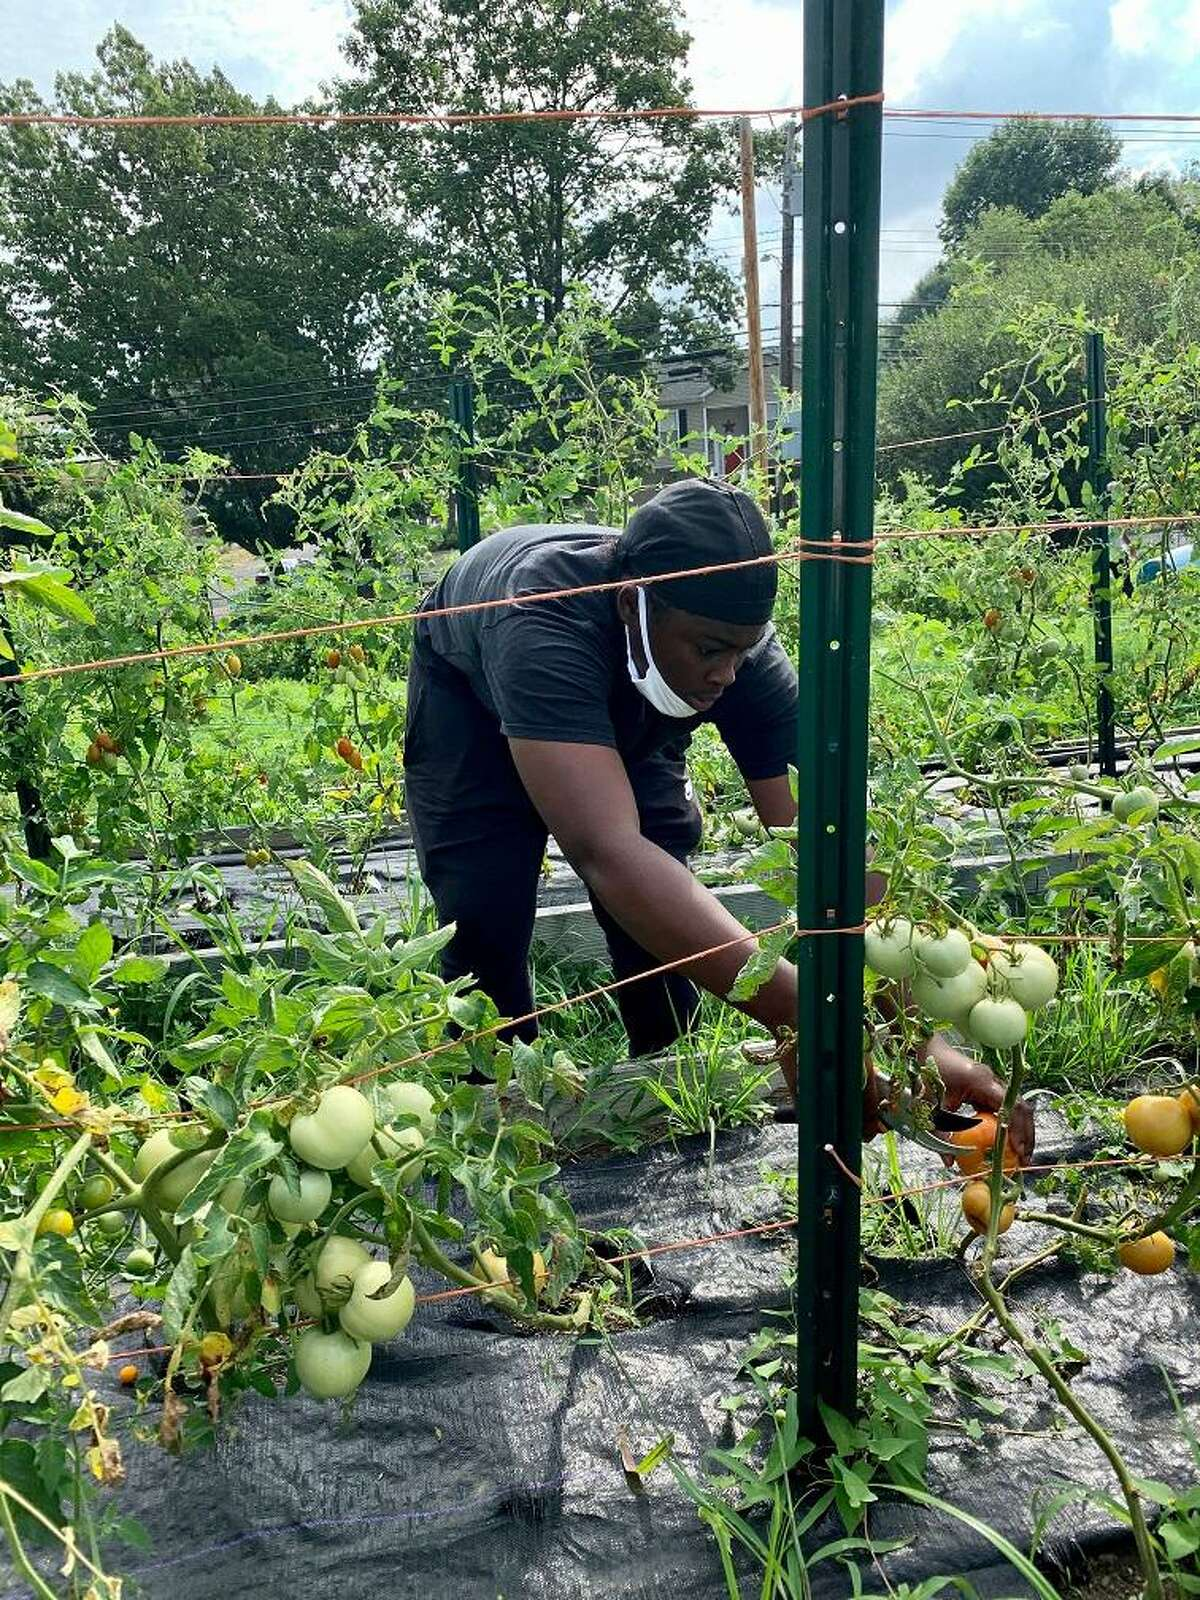 West Haven High School Senior Maya Angela Wheeler harvests tomatoes for GVI's weekly farm stand. Each year the stand produces thousands of pounds of food for the Bridgeport community.